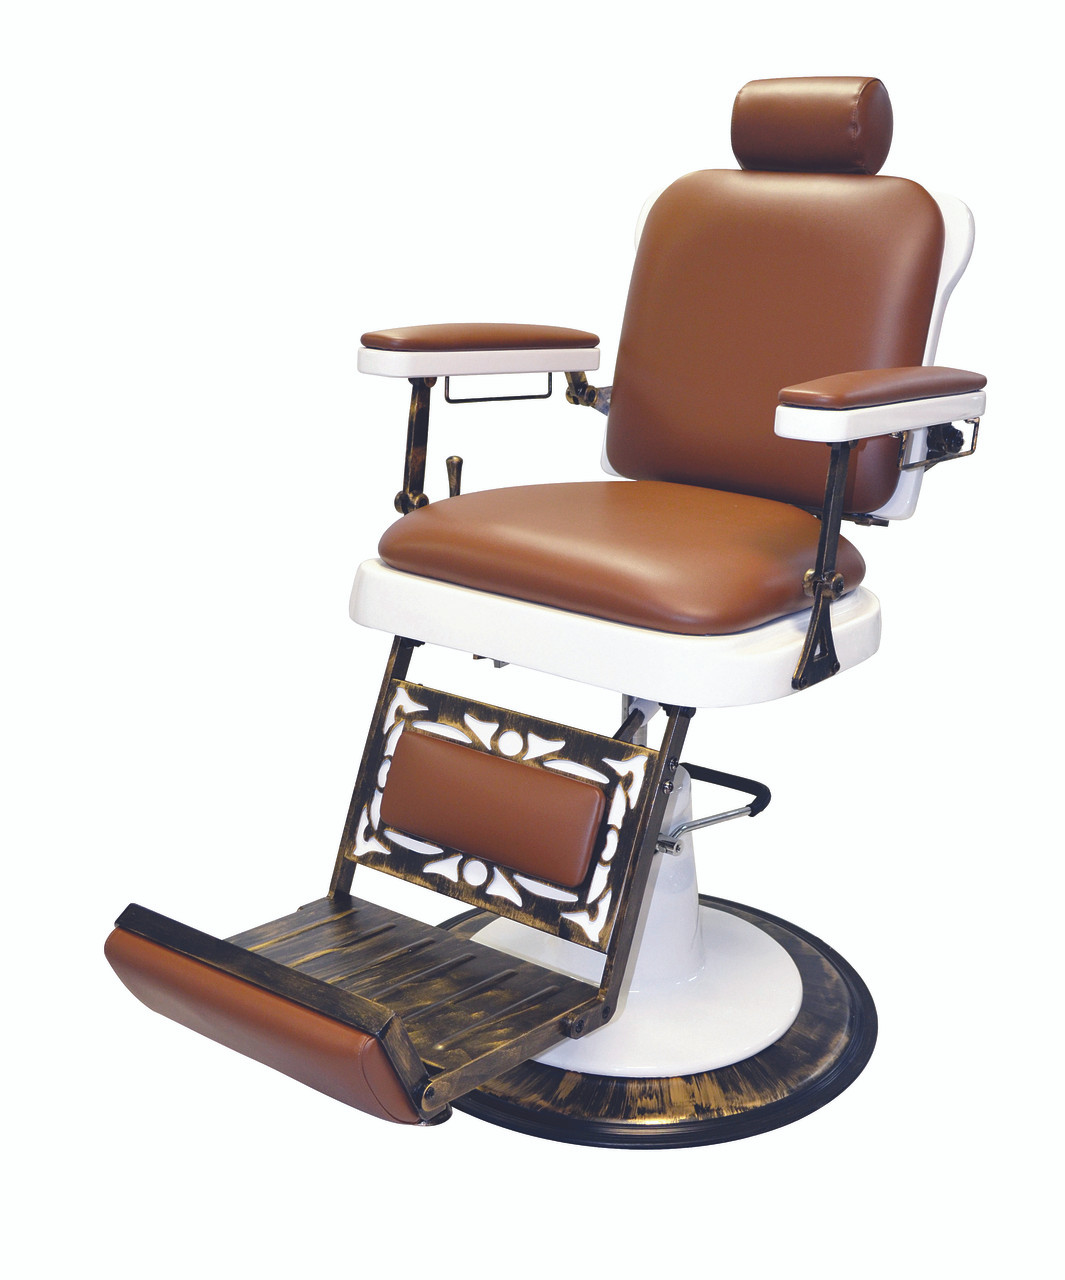 Hover Round Chairs Pibbs 662 The King Barber Chair With White Base Salonequipment